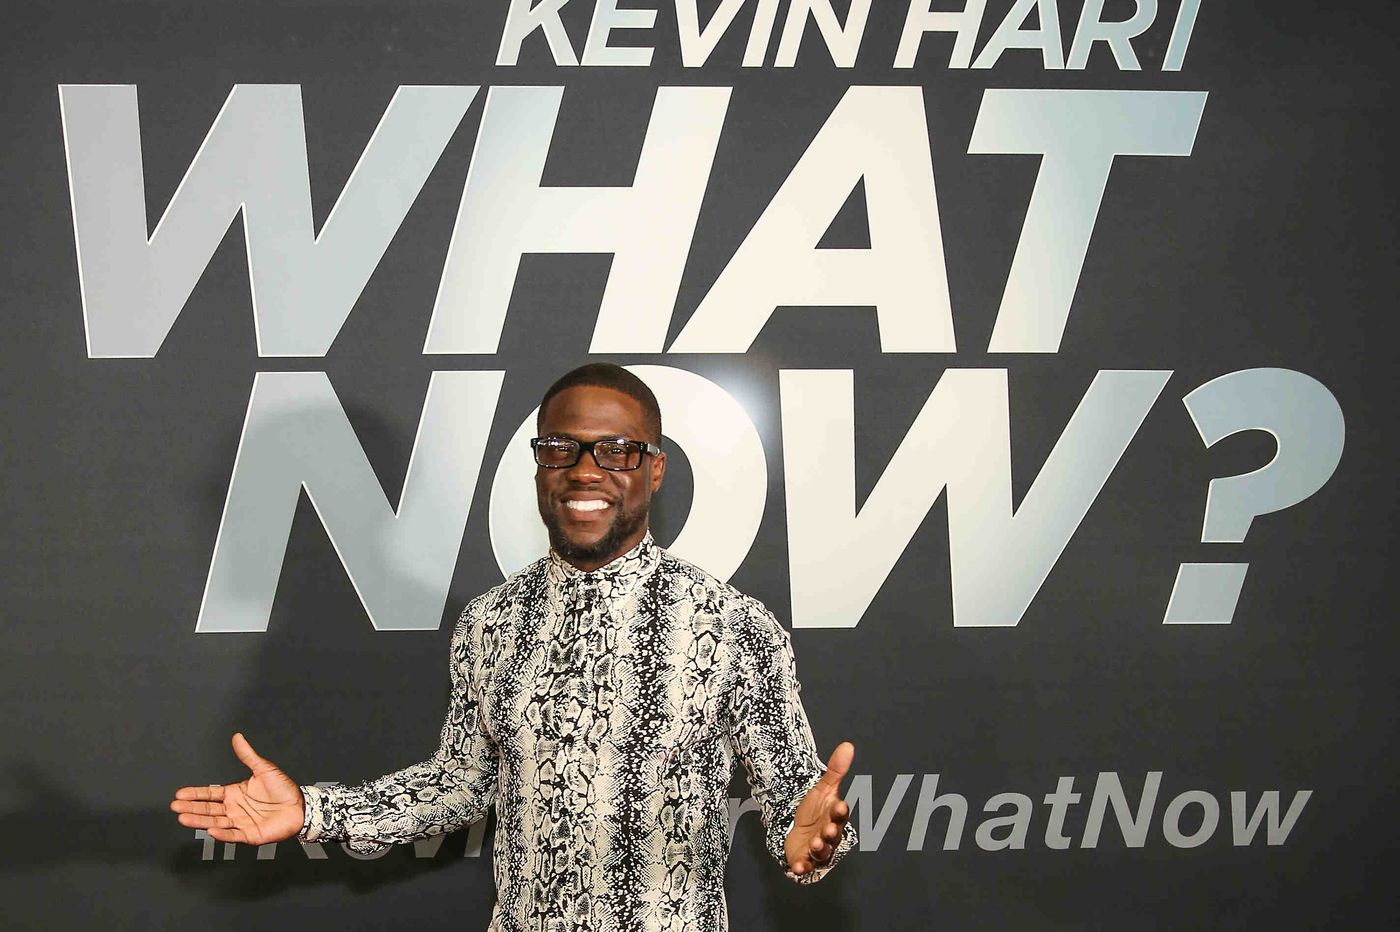 Kevin Hart did the honorable thing when he stepped down as host of the 2019 Oscars | Elizabeth Wellington